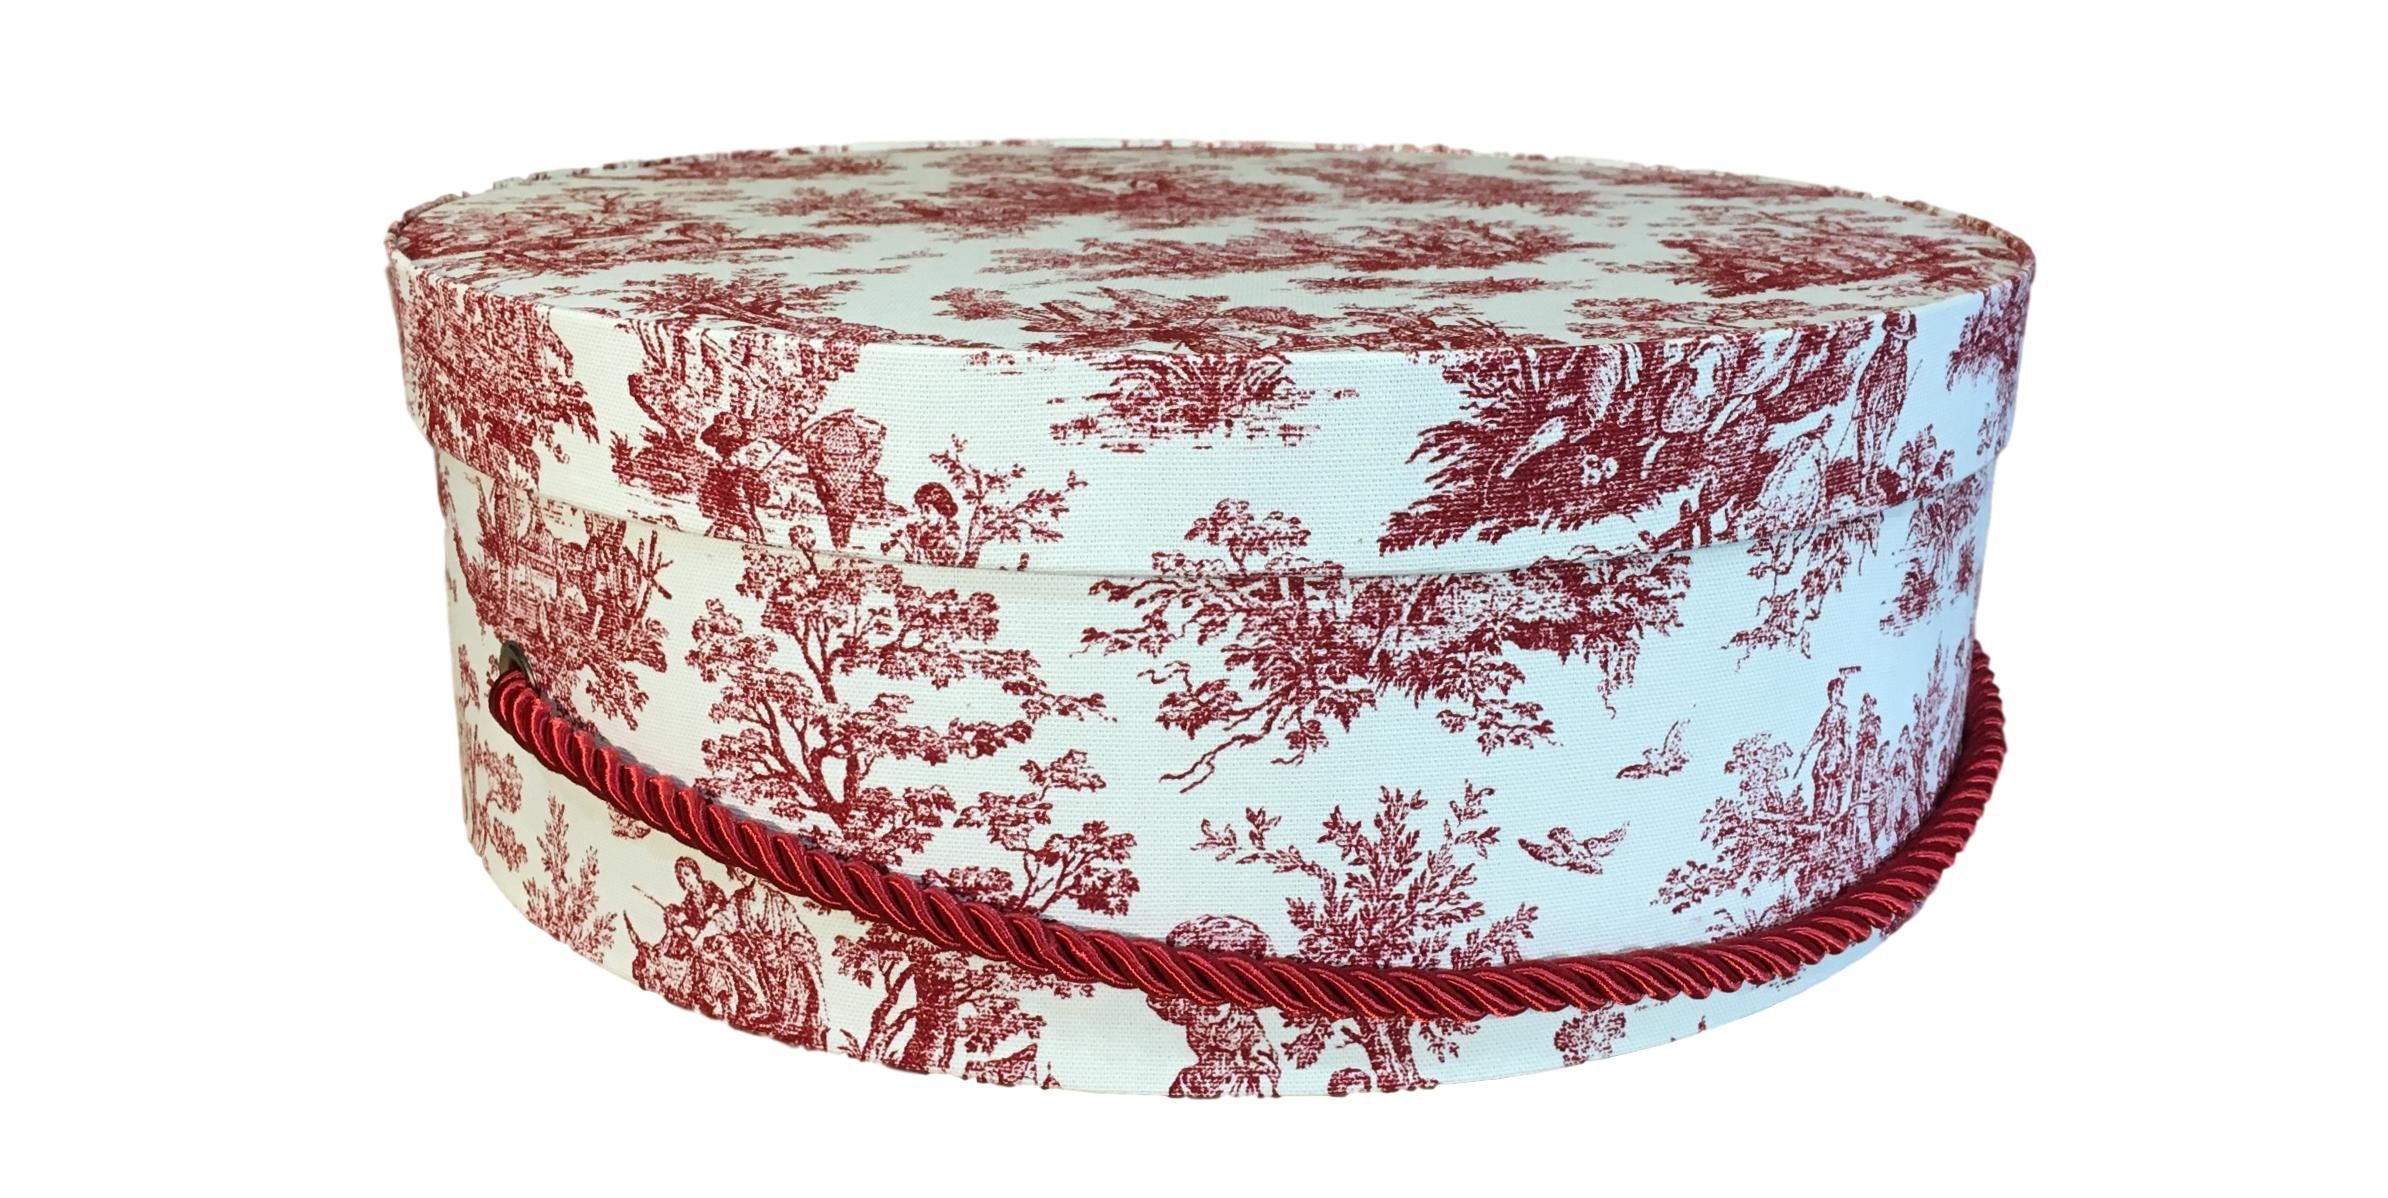 Large Hat Box In Red French Toile Fabric Decorative Fabric Covered Hat Boxes Round Storage Box Keepsake Boxes With Lid Fabric Decor Toile Fabric Hat Boxes